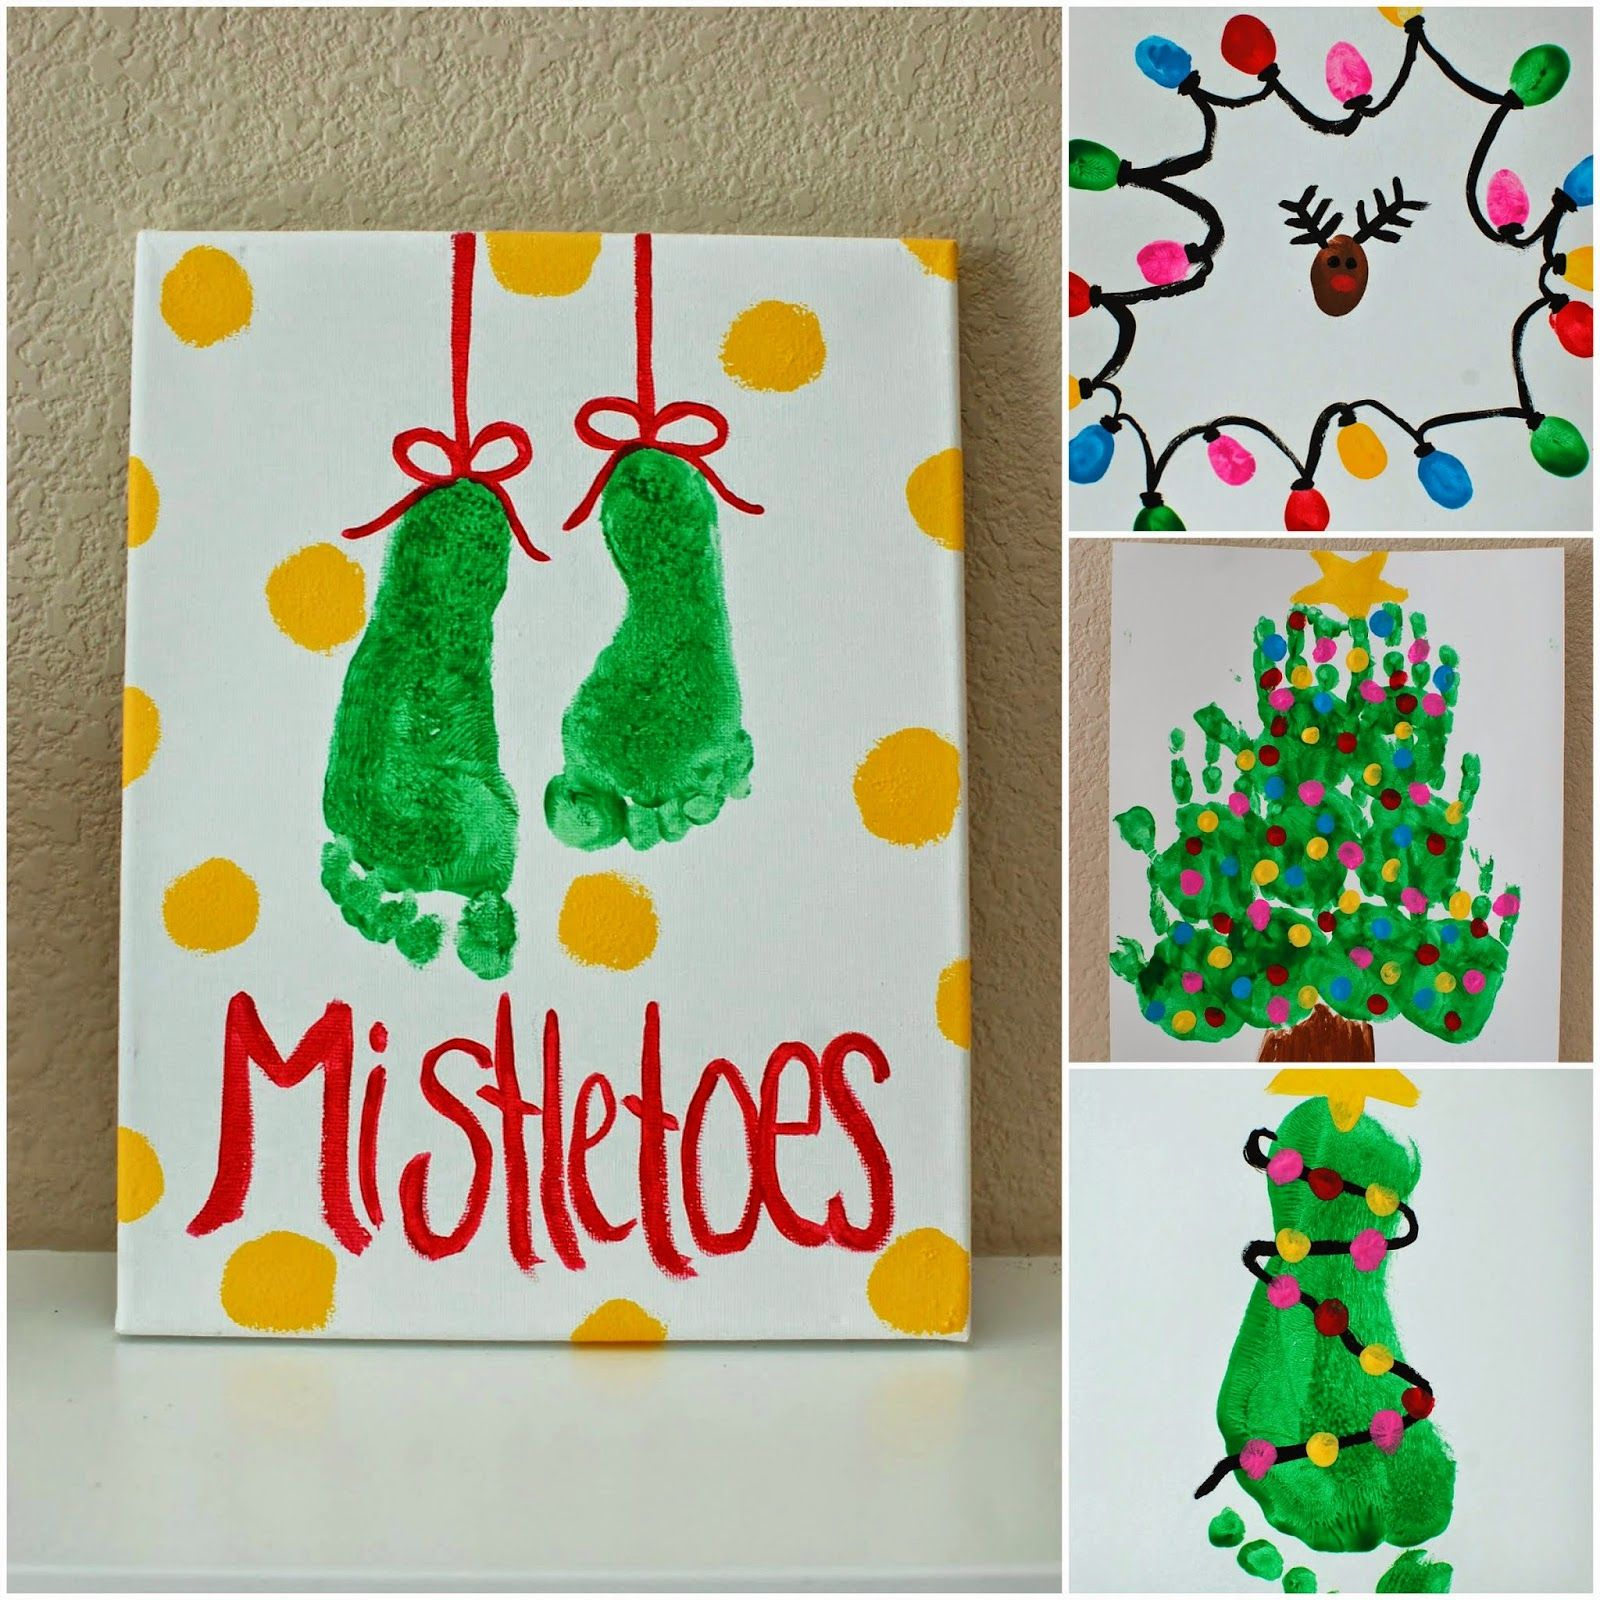 15 Awesome Christmas Cards to Make With Kids | Neat Game Development ...